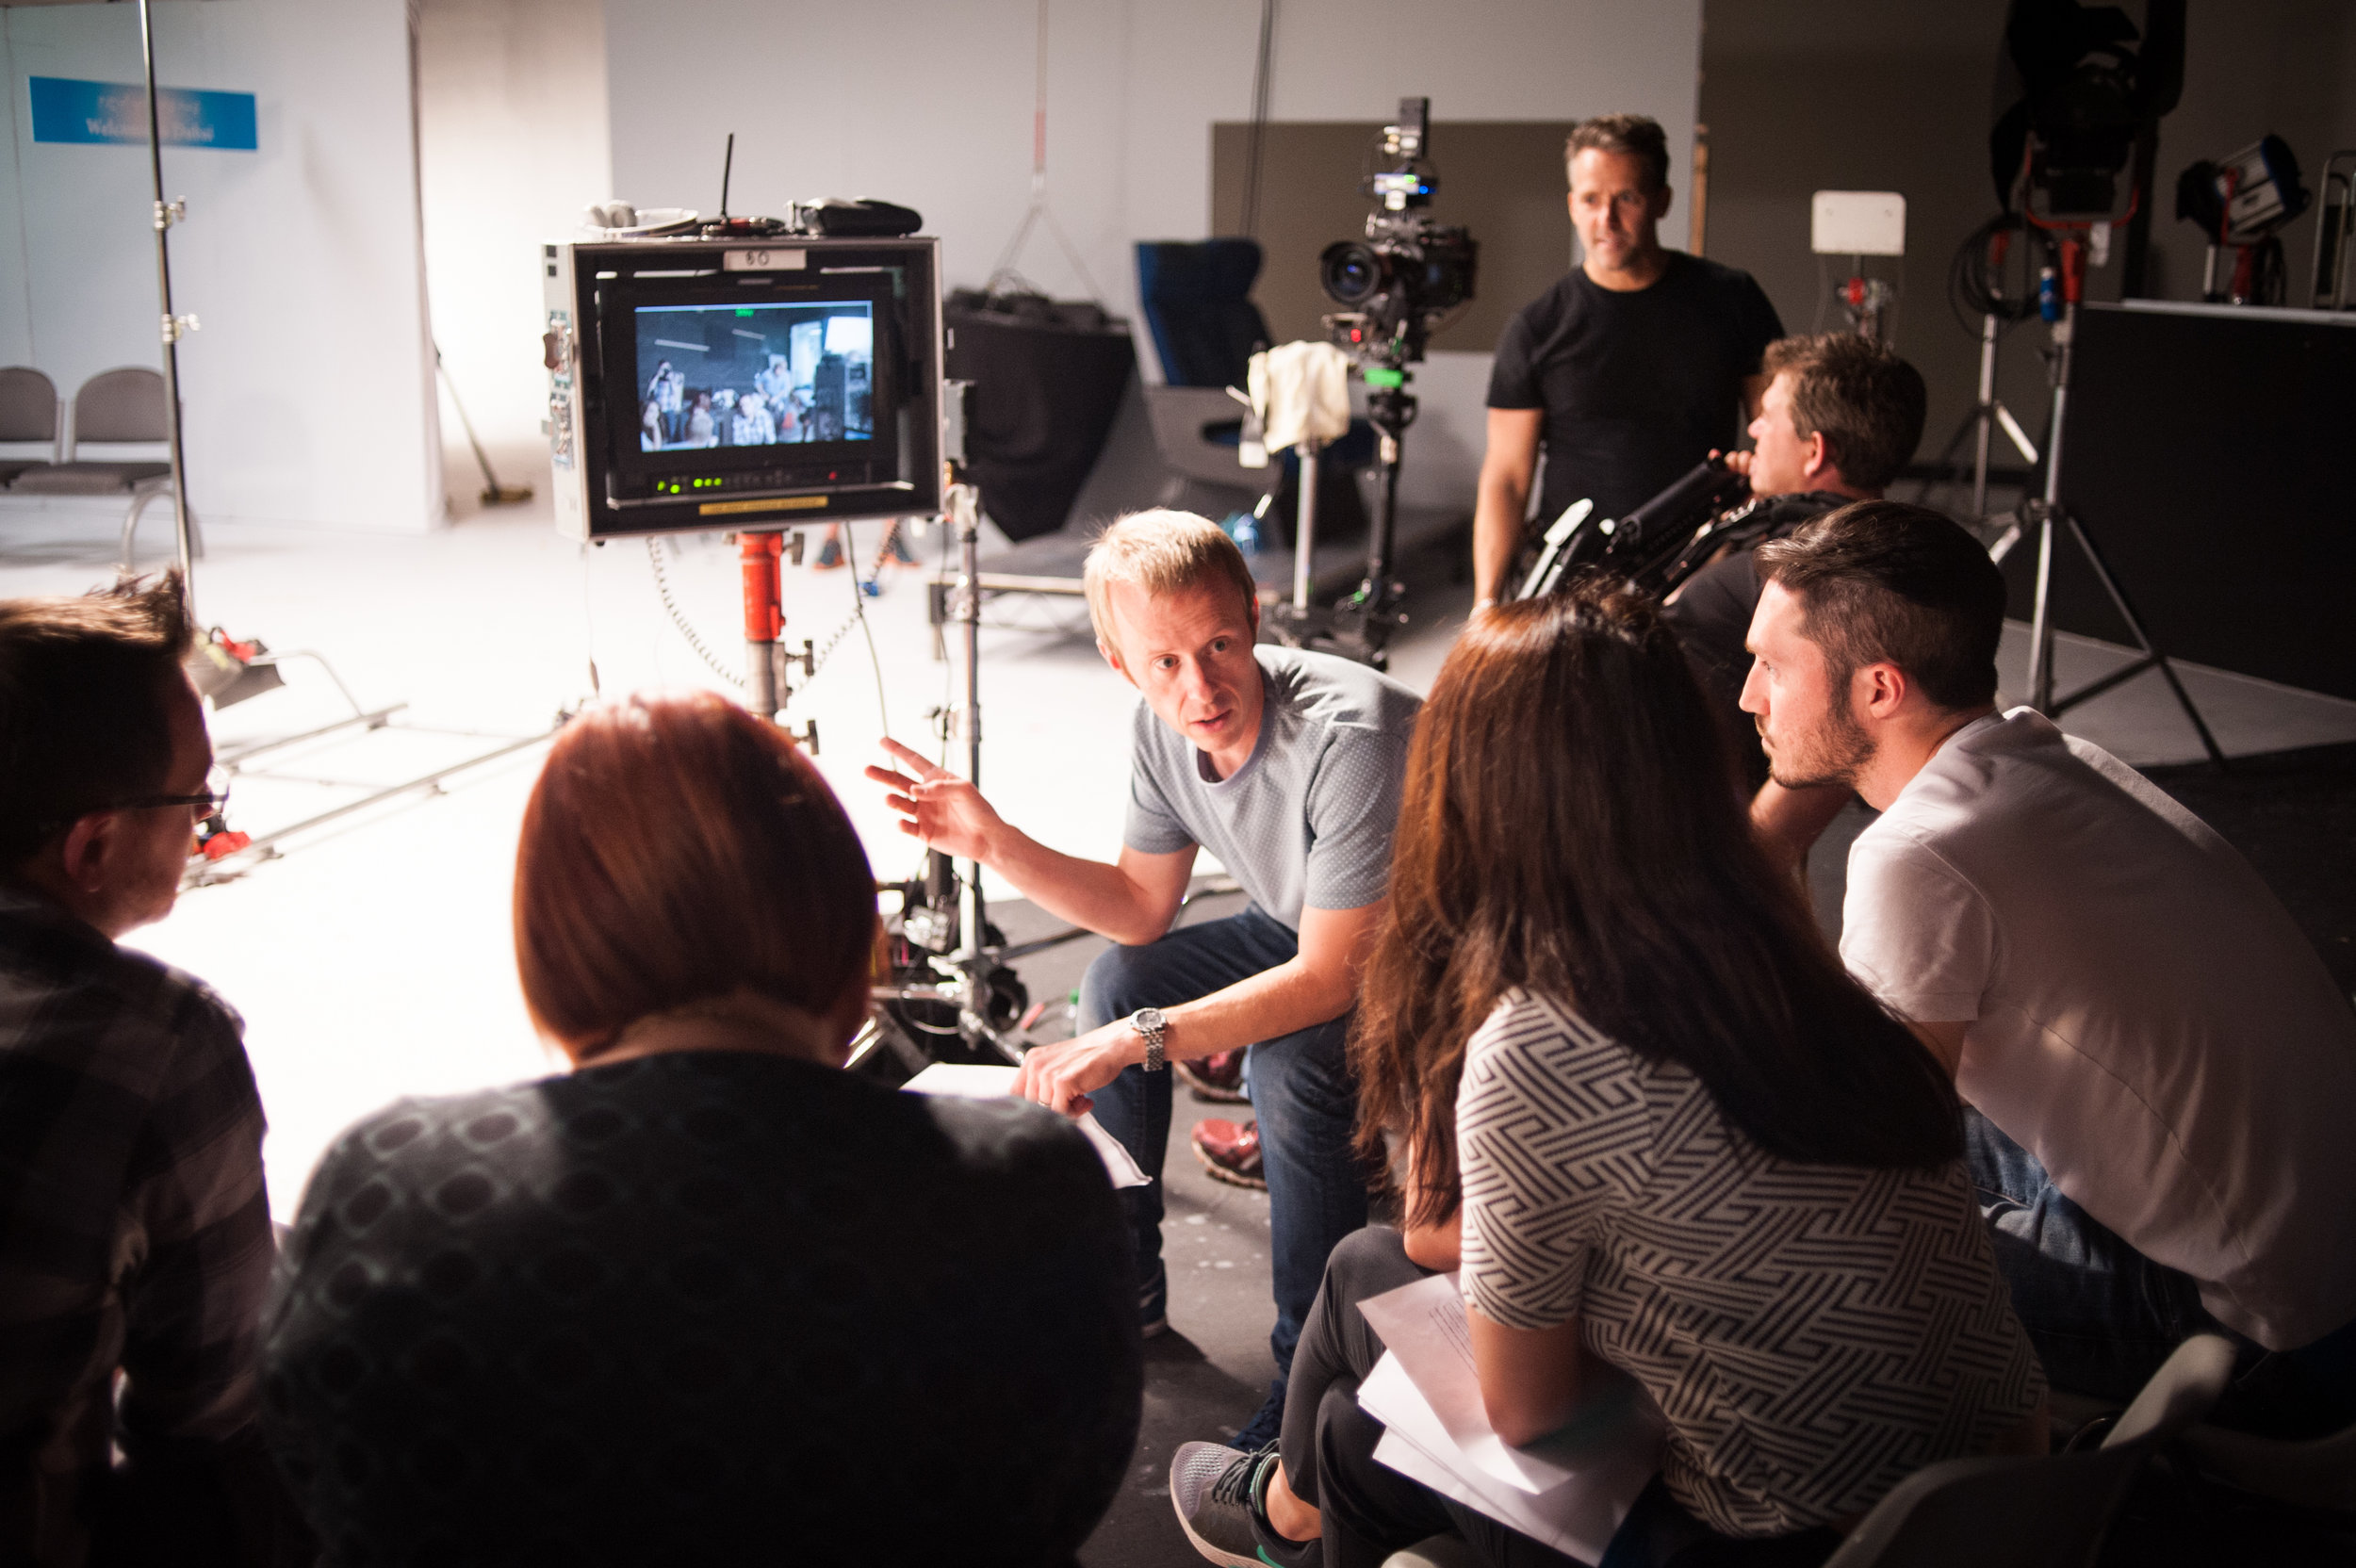 Liam on set with the agency and client. Moremilk was formed in 2014 with Liam as its primary Director. Liam recently completed the APA Masterclass in Producing - obtaining an 'outstanding' mark - and now both directs and produces.